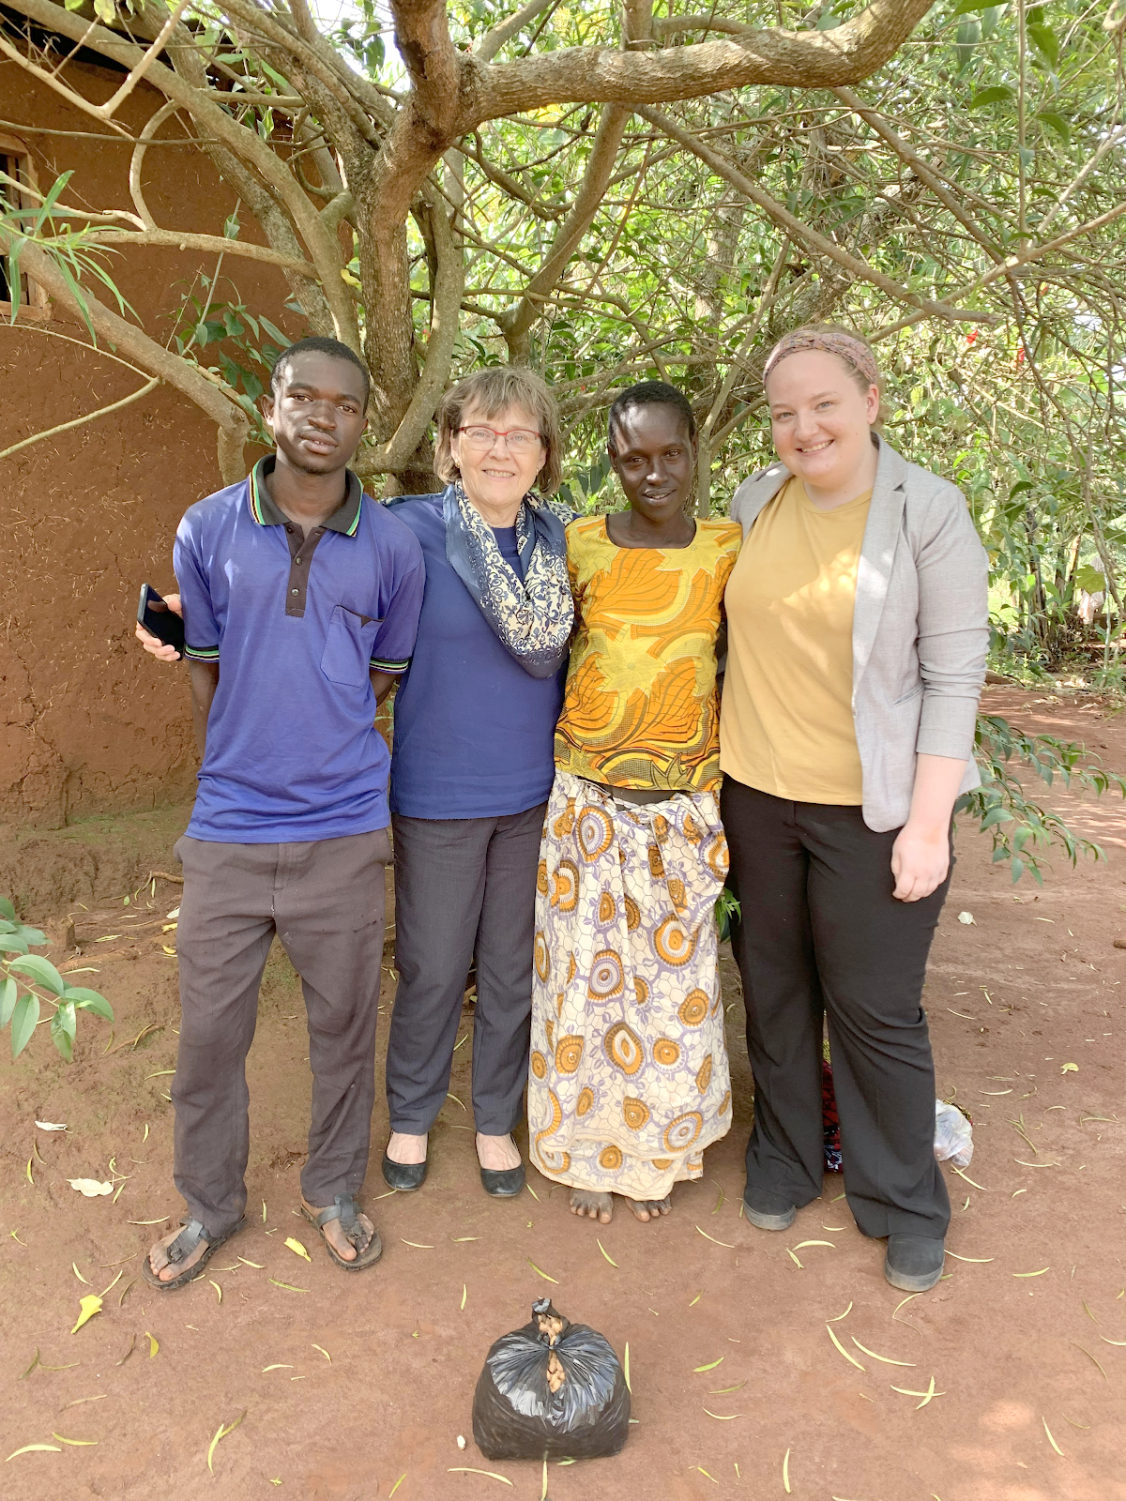 Winkler and Plumhoff pose alongside their friend Alimwenda and her son Mjuni in Tanzania.